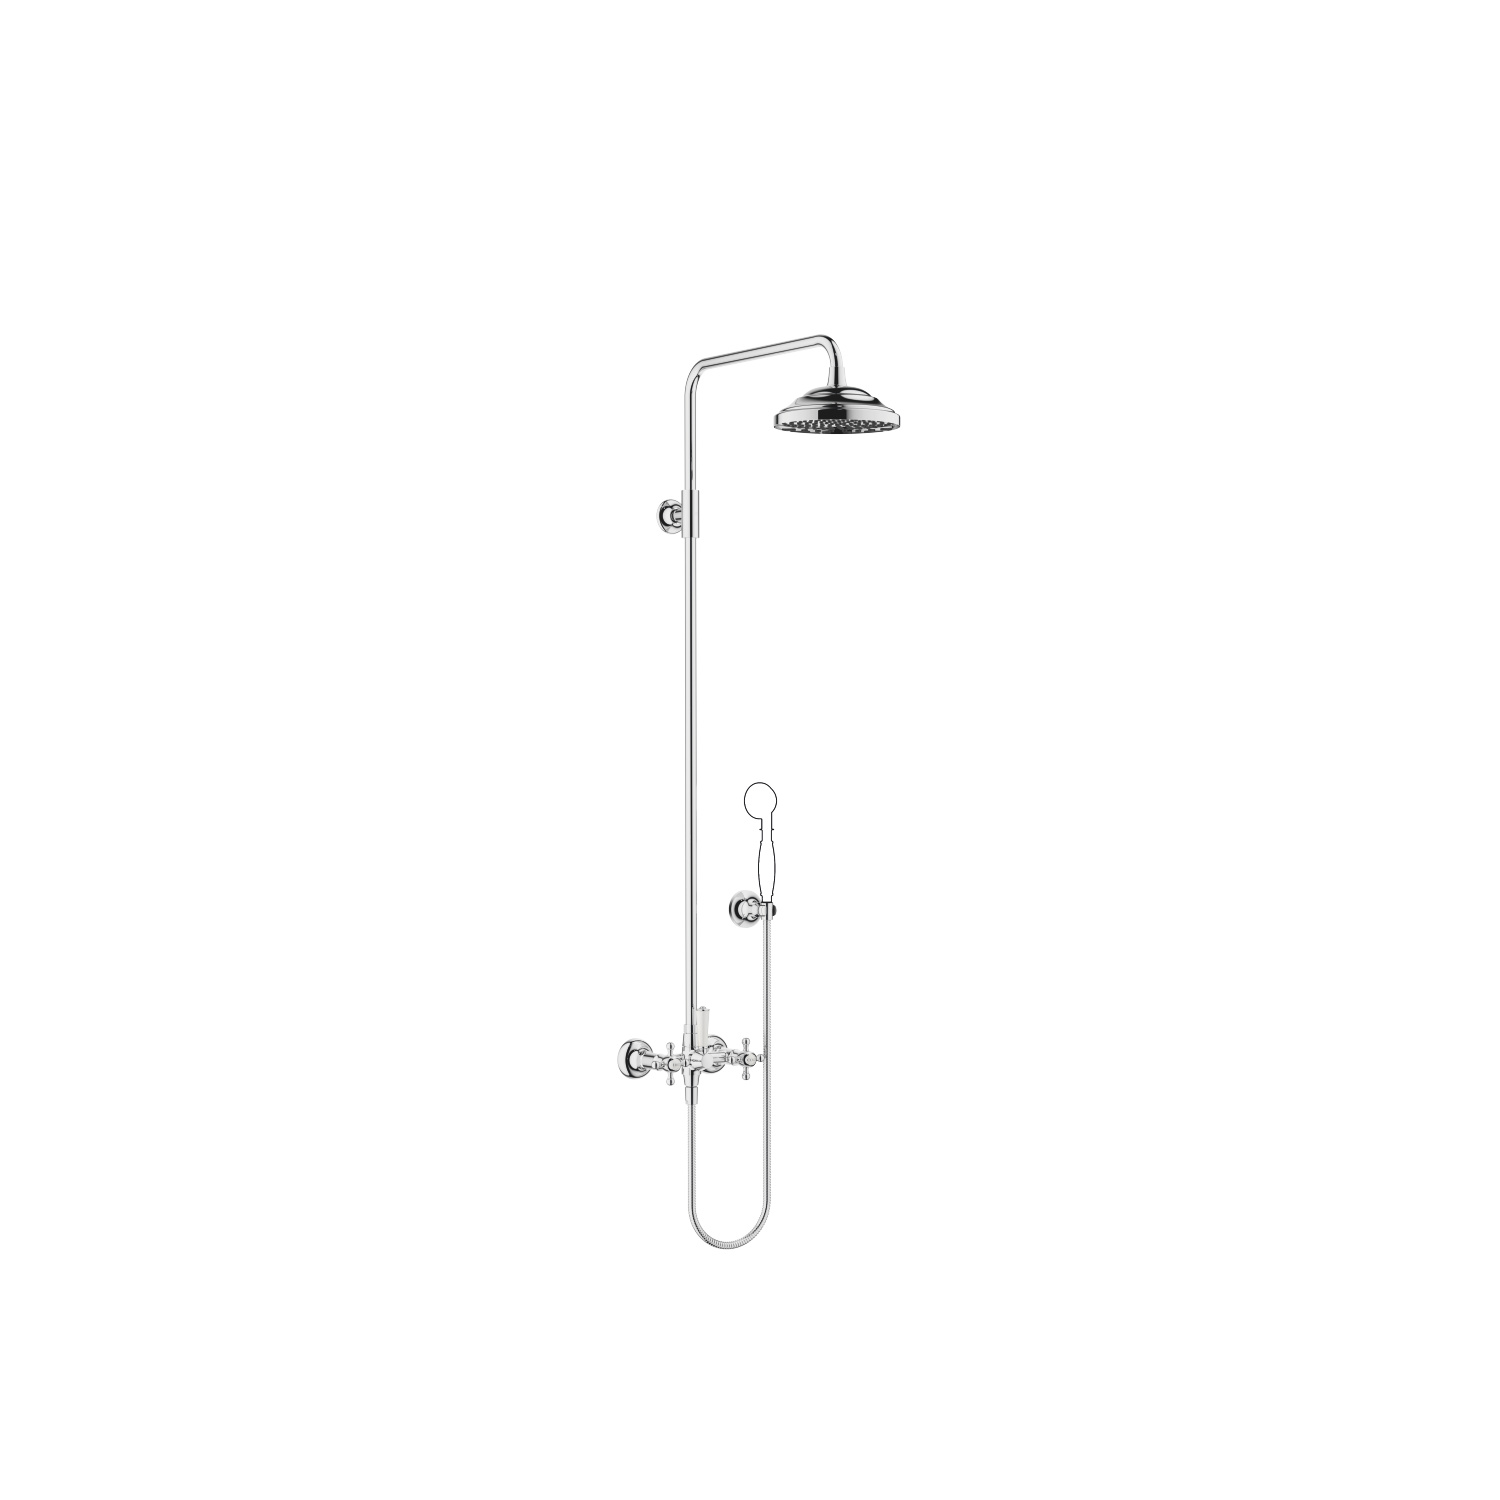 Showerpipe with shower mixer without hand shower - polished chrome